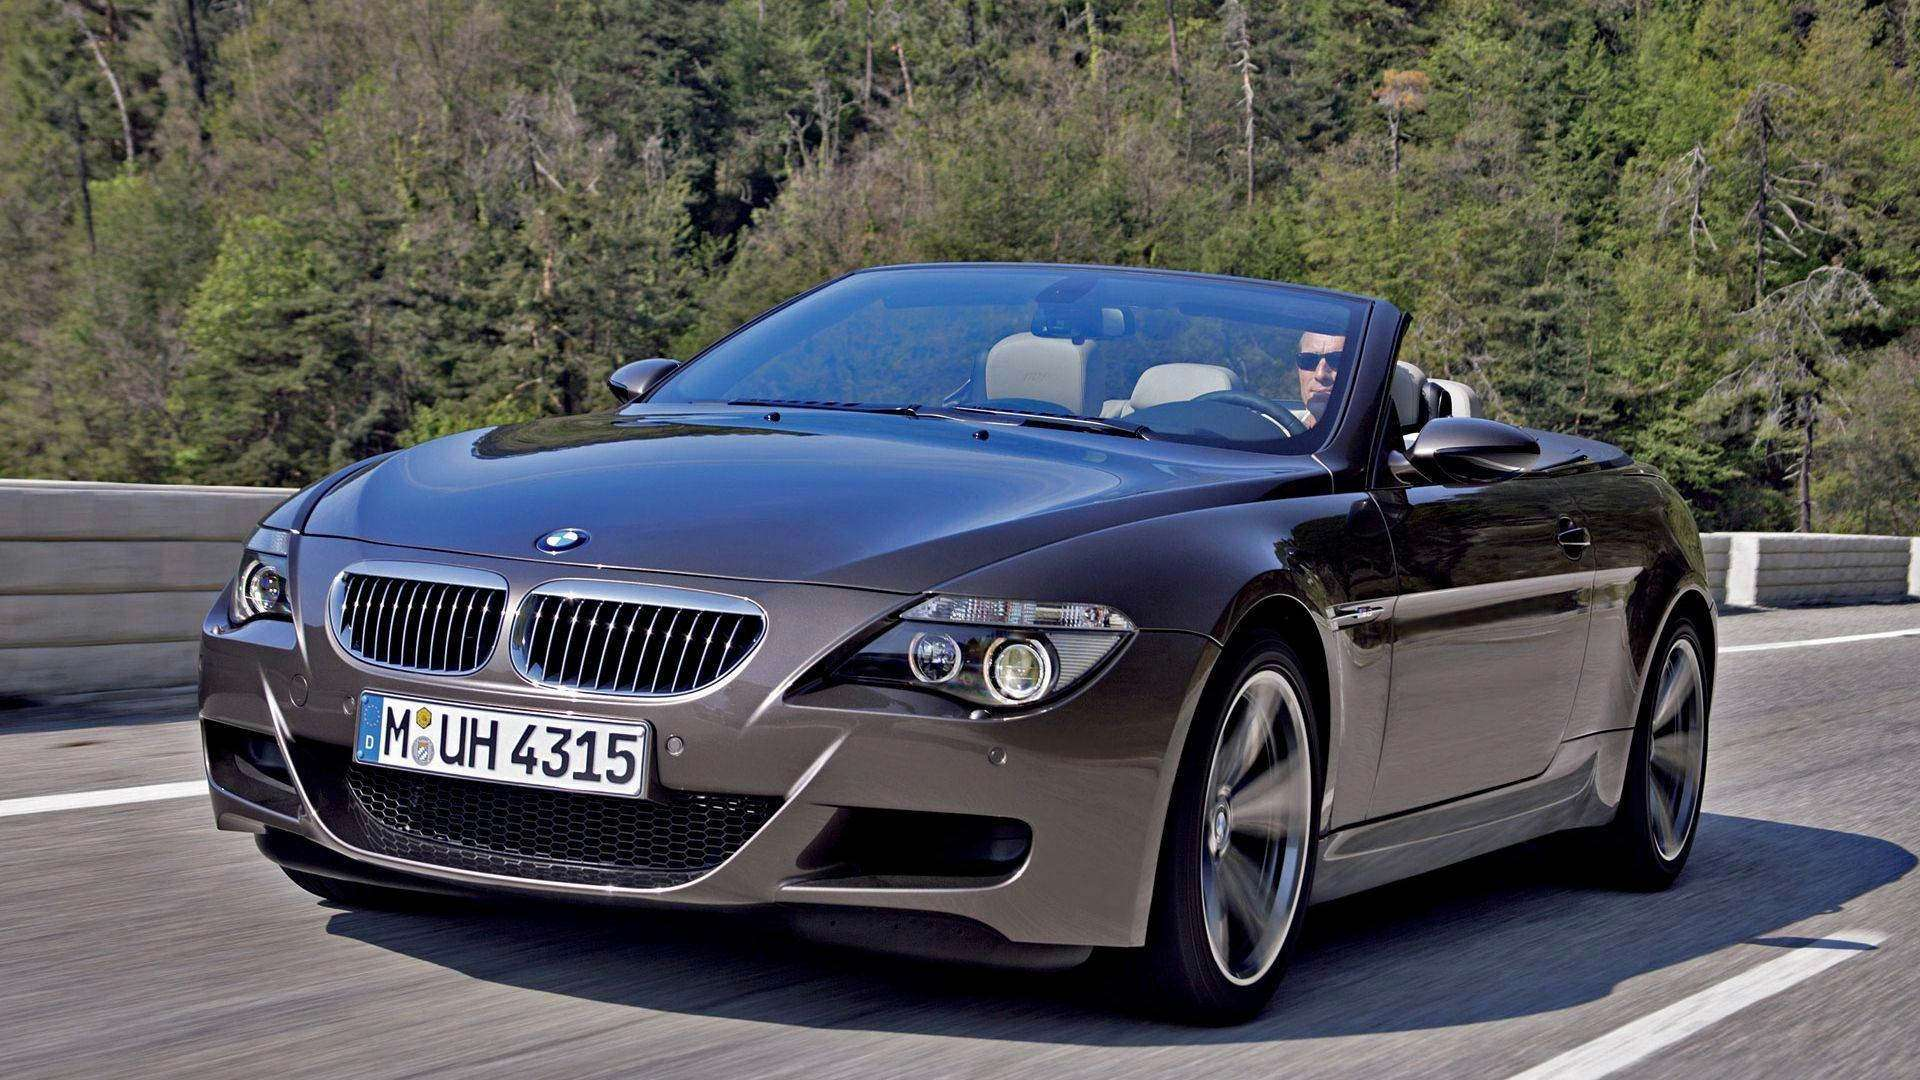 Wallpaper bmw cars hd wallpapers - Bmw cars wallpapers hd free download ...